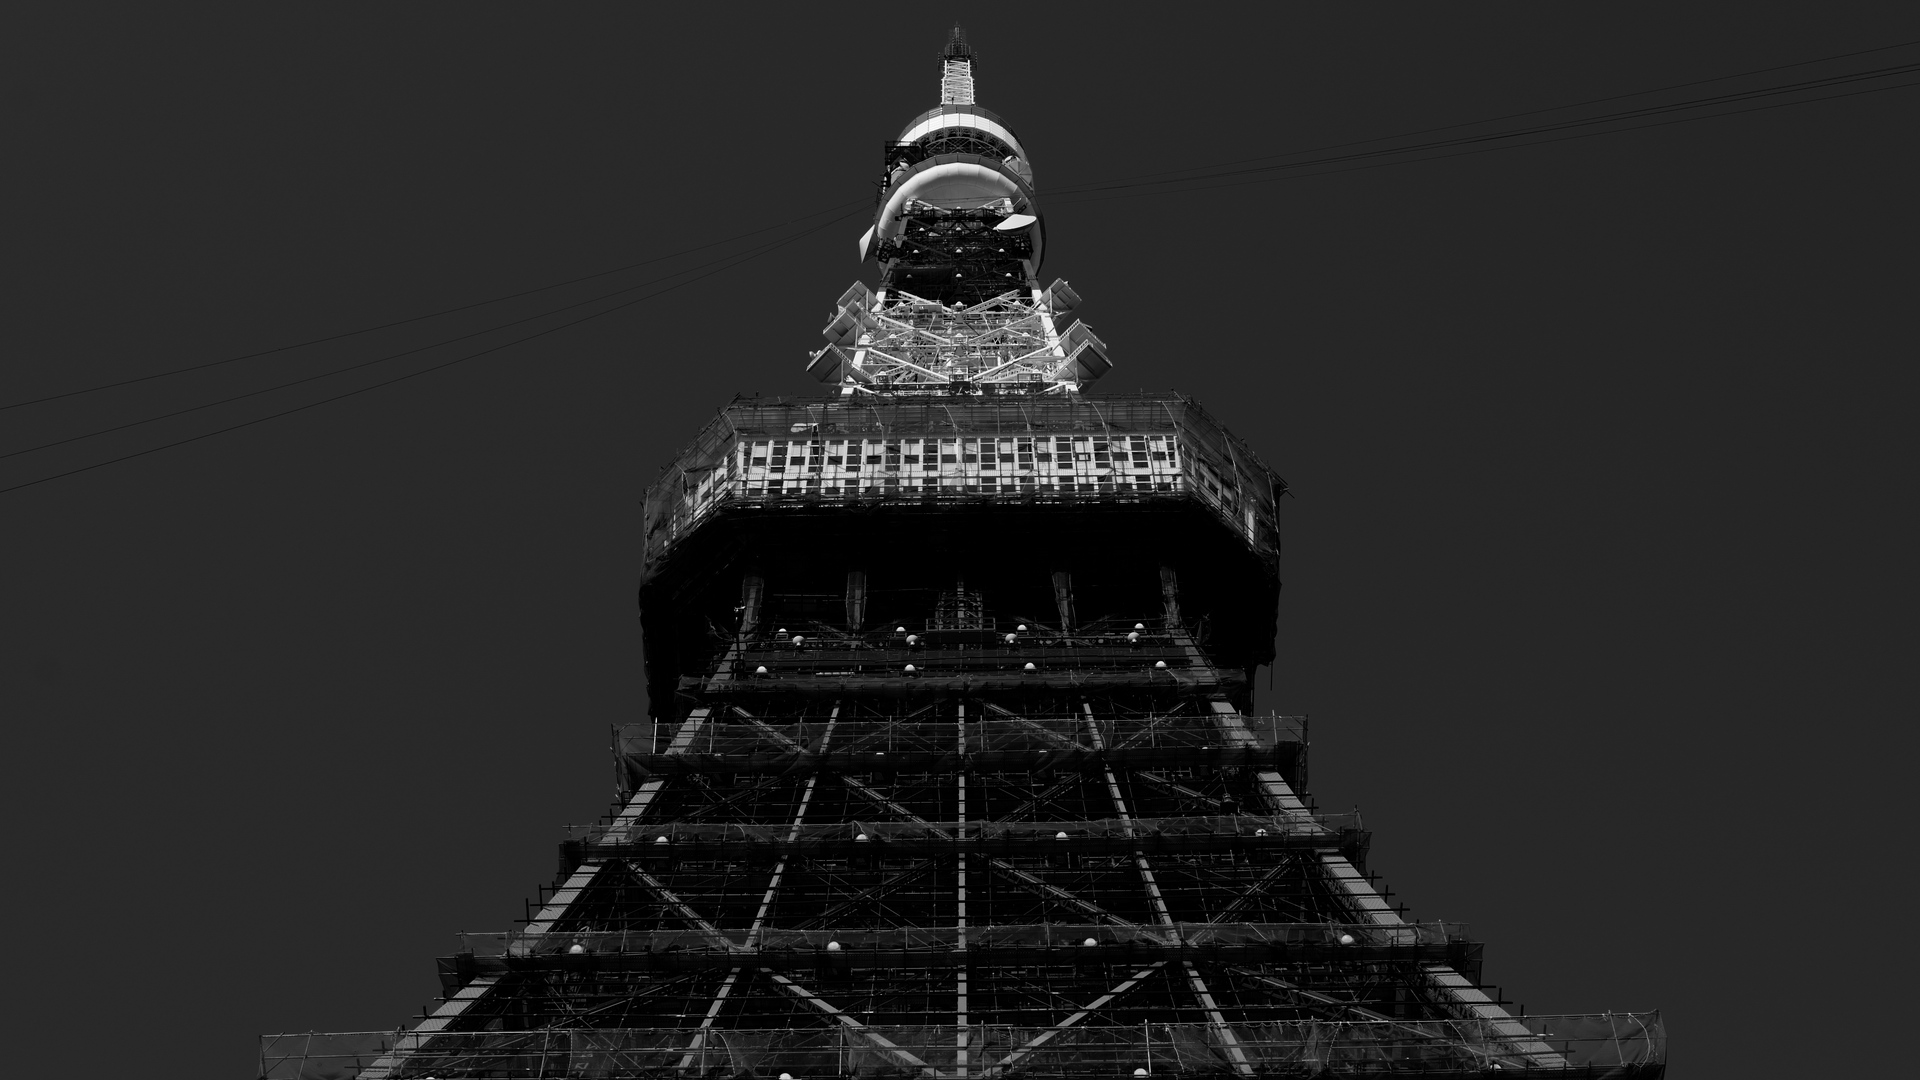 tower bw architecture x